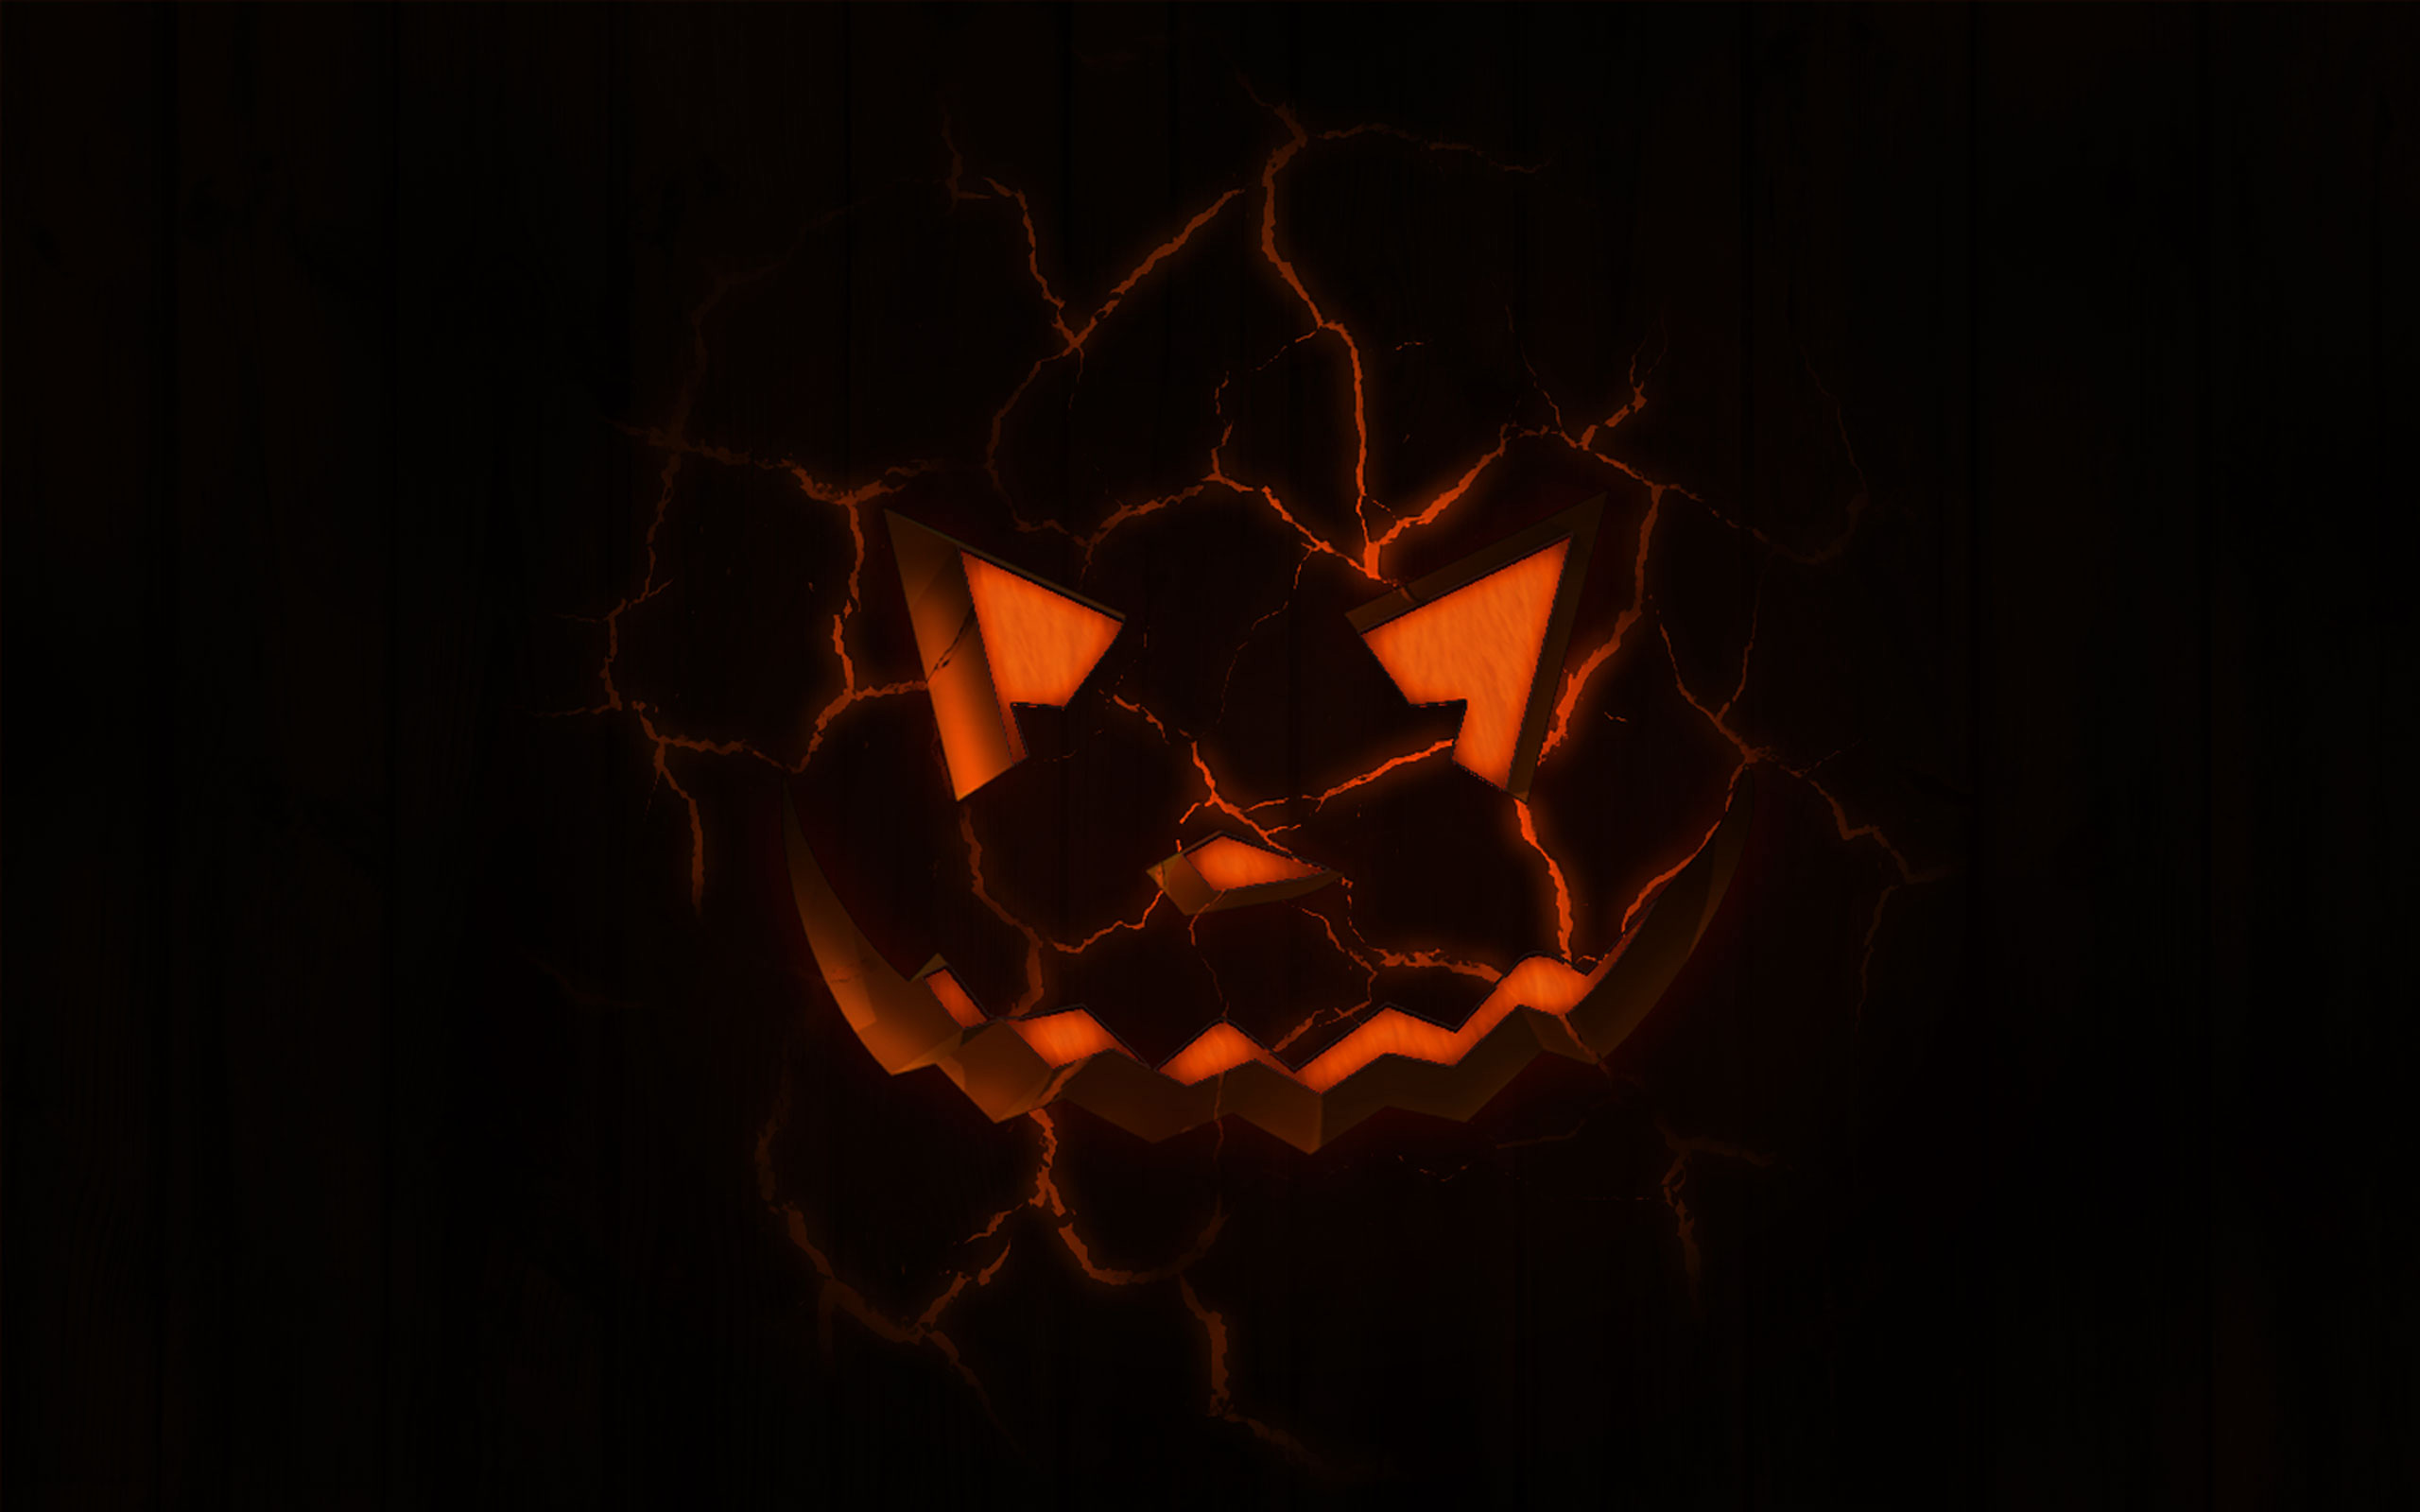 Free Hd Live Wallpapers For Android Phones Scary Pumpkin Wallpaper 25773 2560x1600 Px Hdwallsource Com